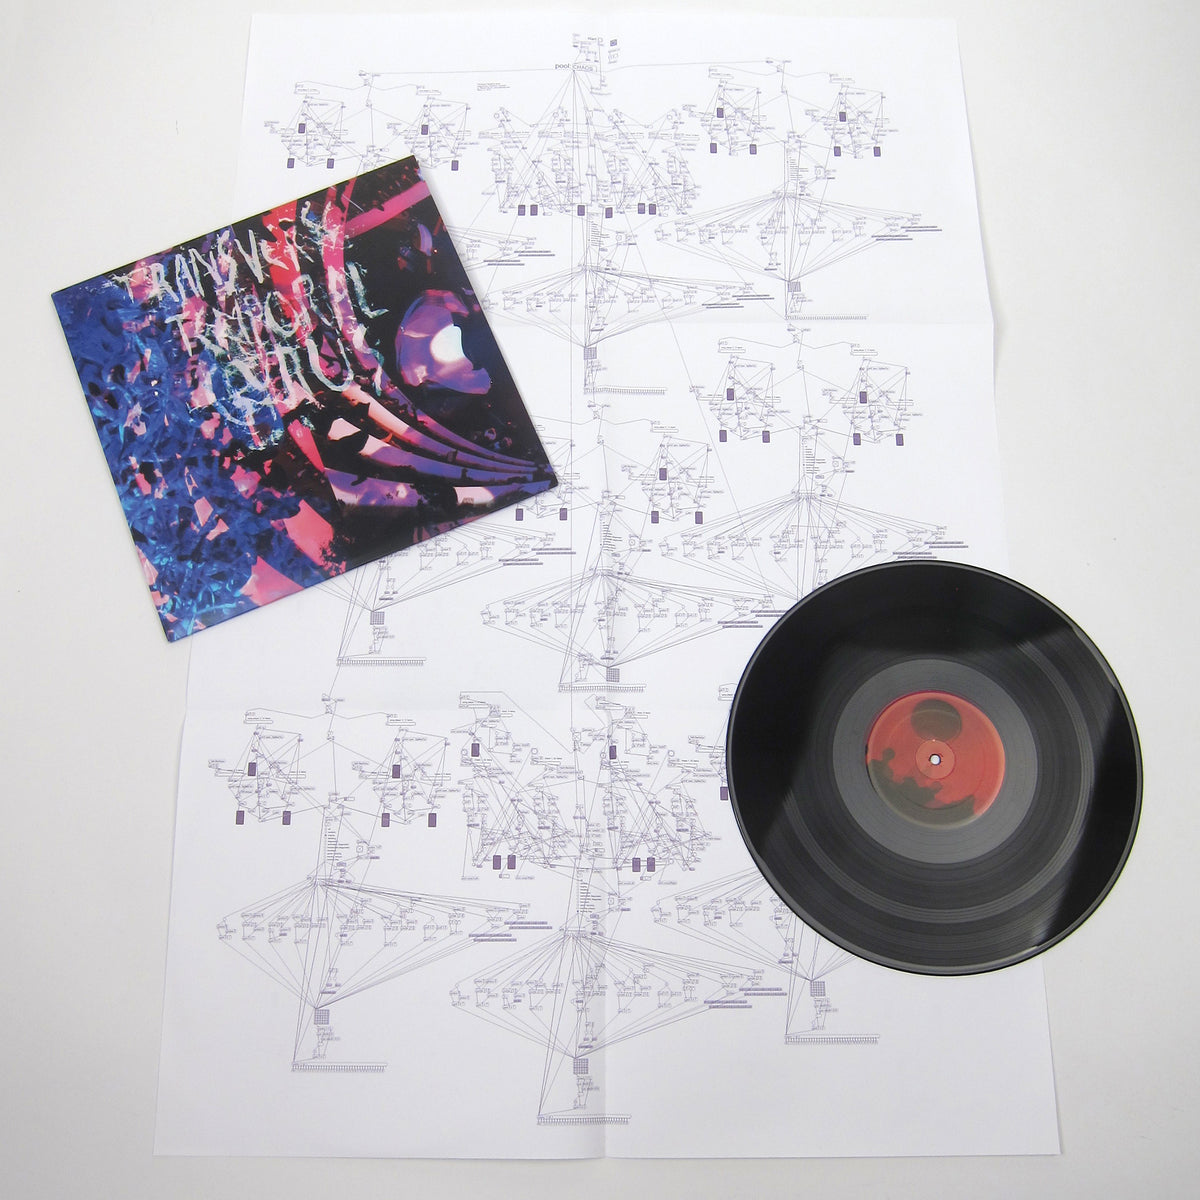 Animal Collective: Transverse Temporal Gyrus (Record Store Day, Poster, Free MP3) LP